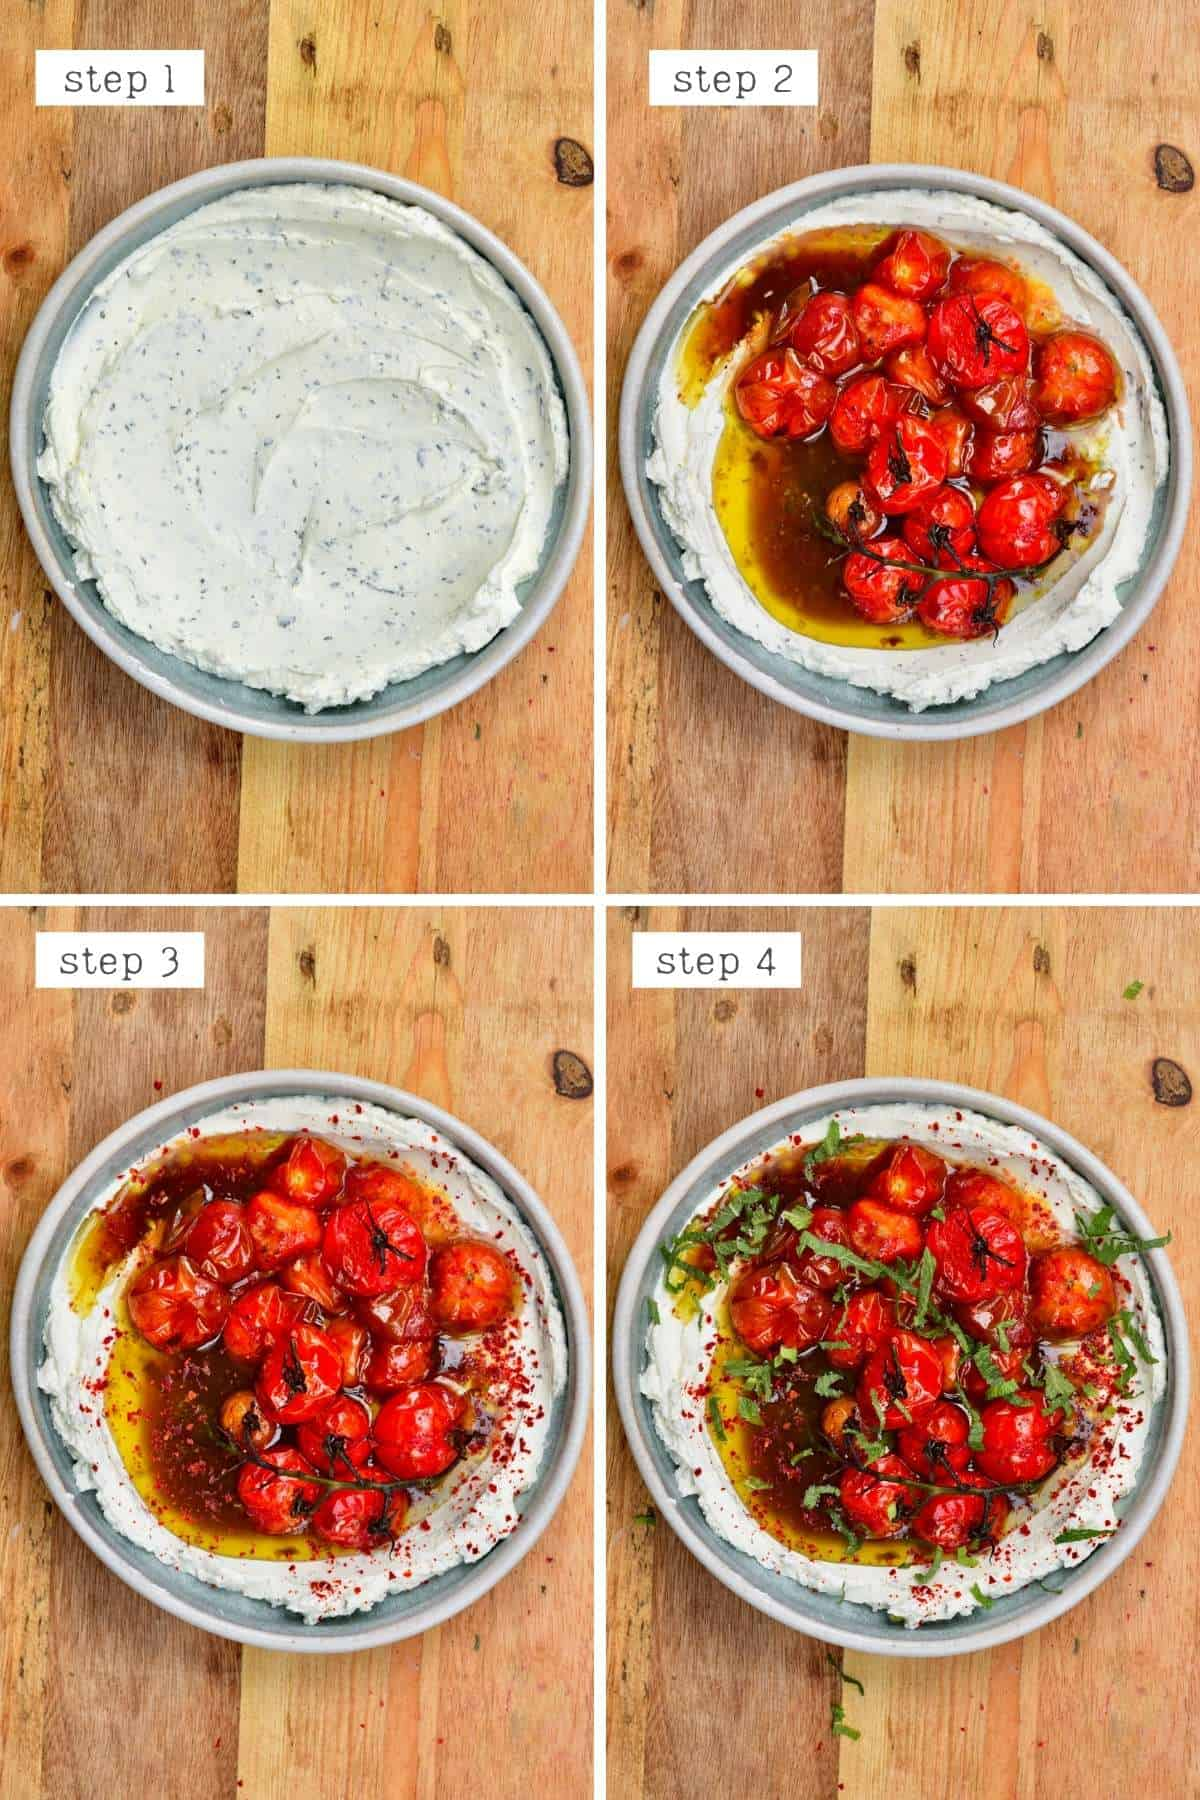 Steps for topping labneh dip with roasted tomatoes